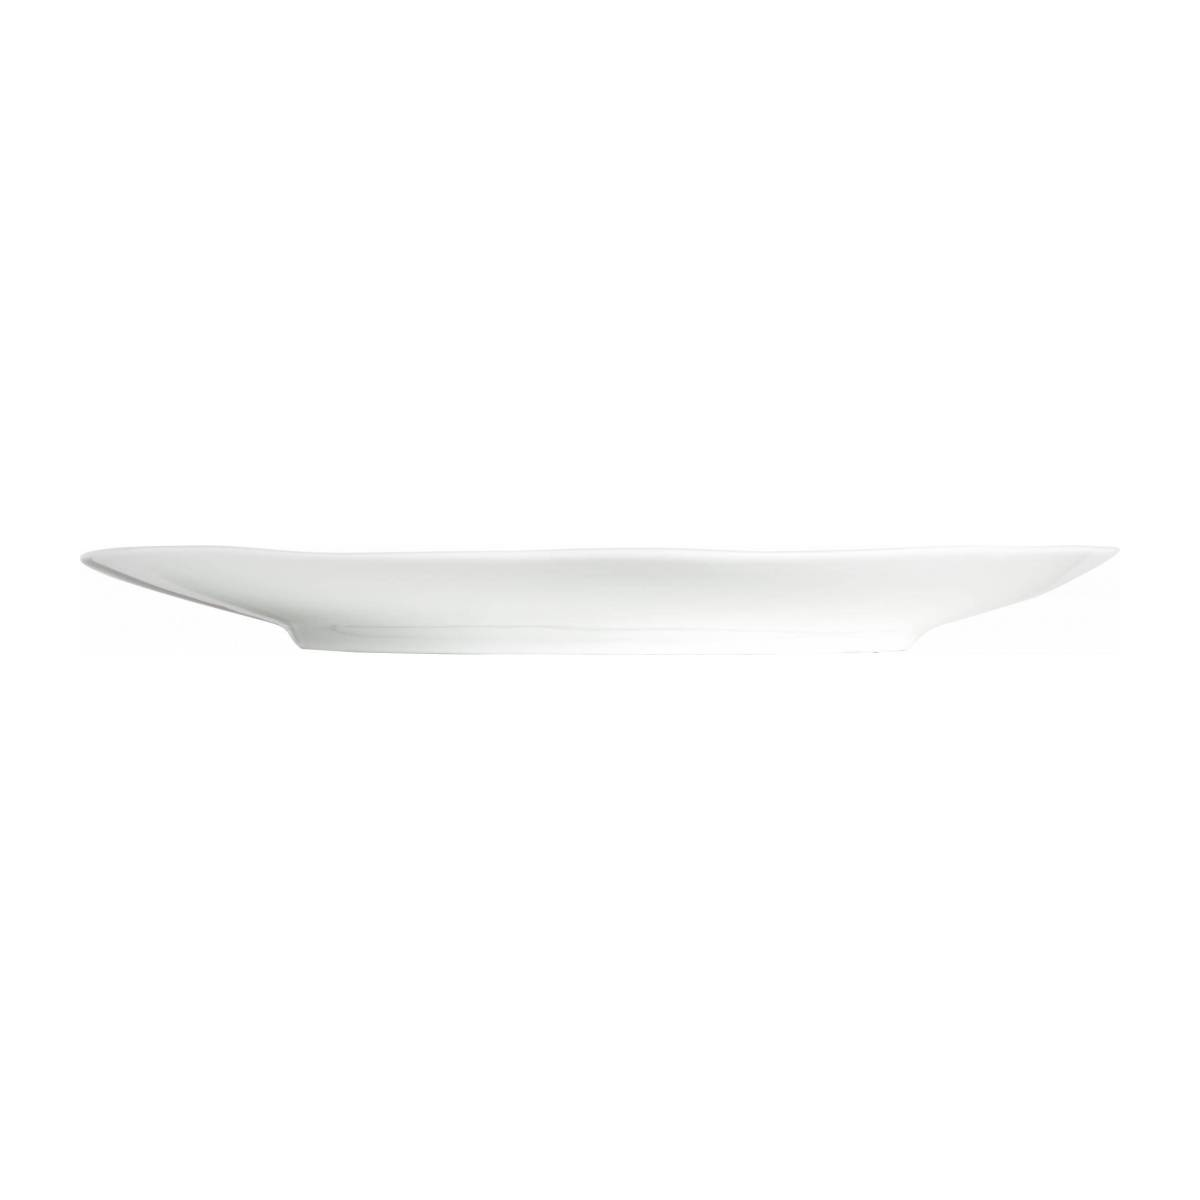 Flat plate made of porcelain, white and blue n°4